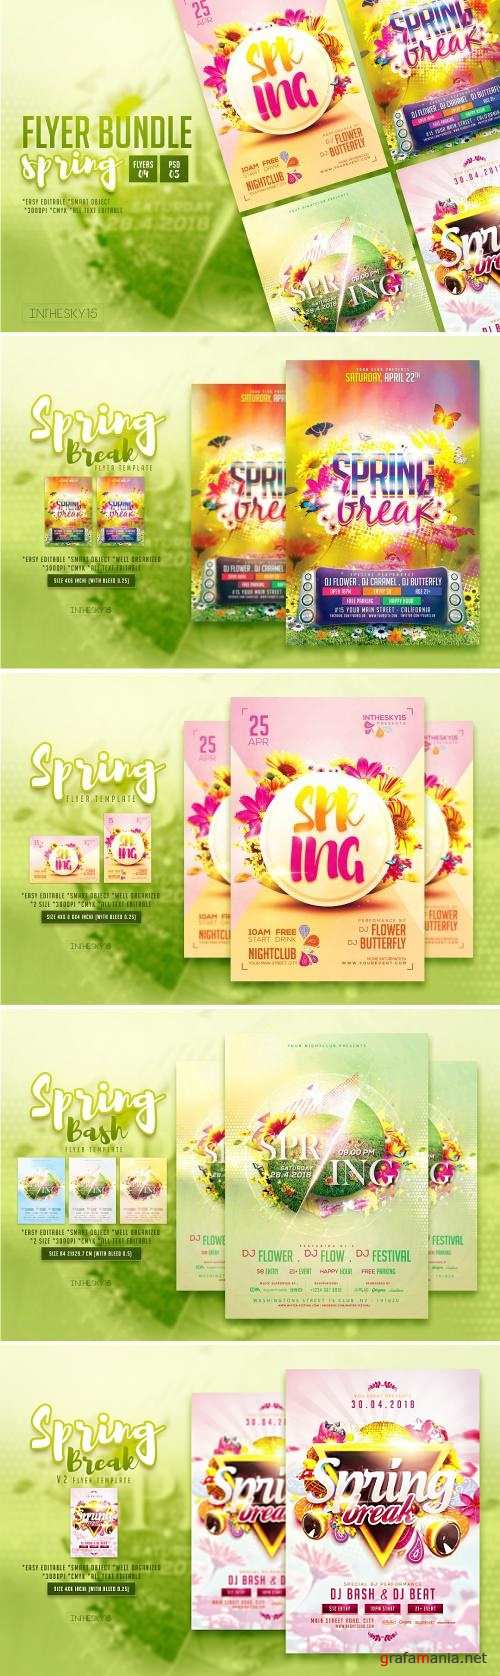 Spring Flyer Bundle - 2484965